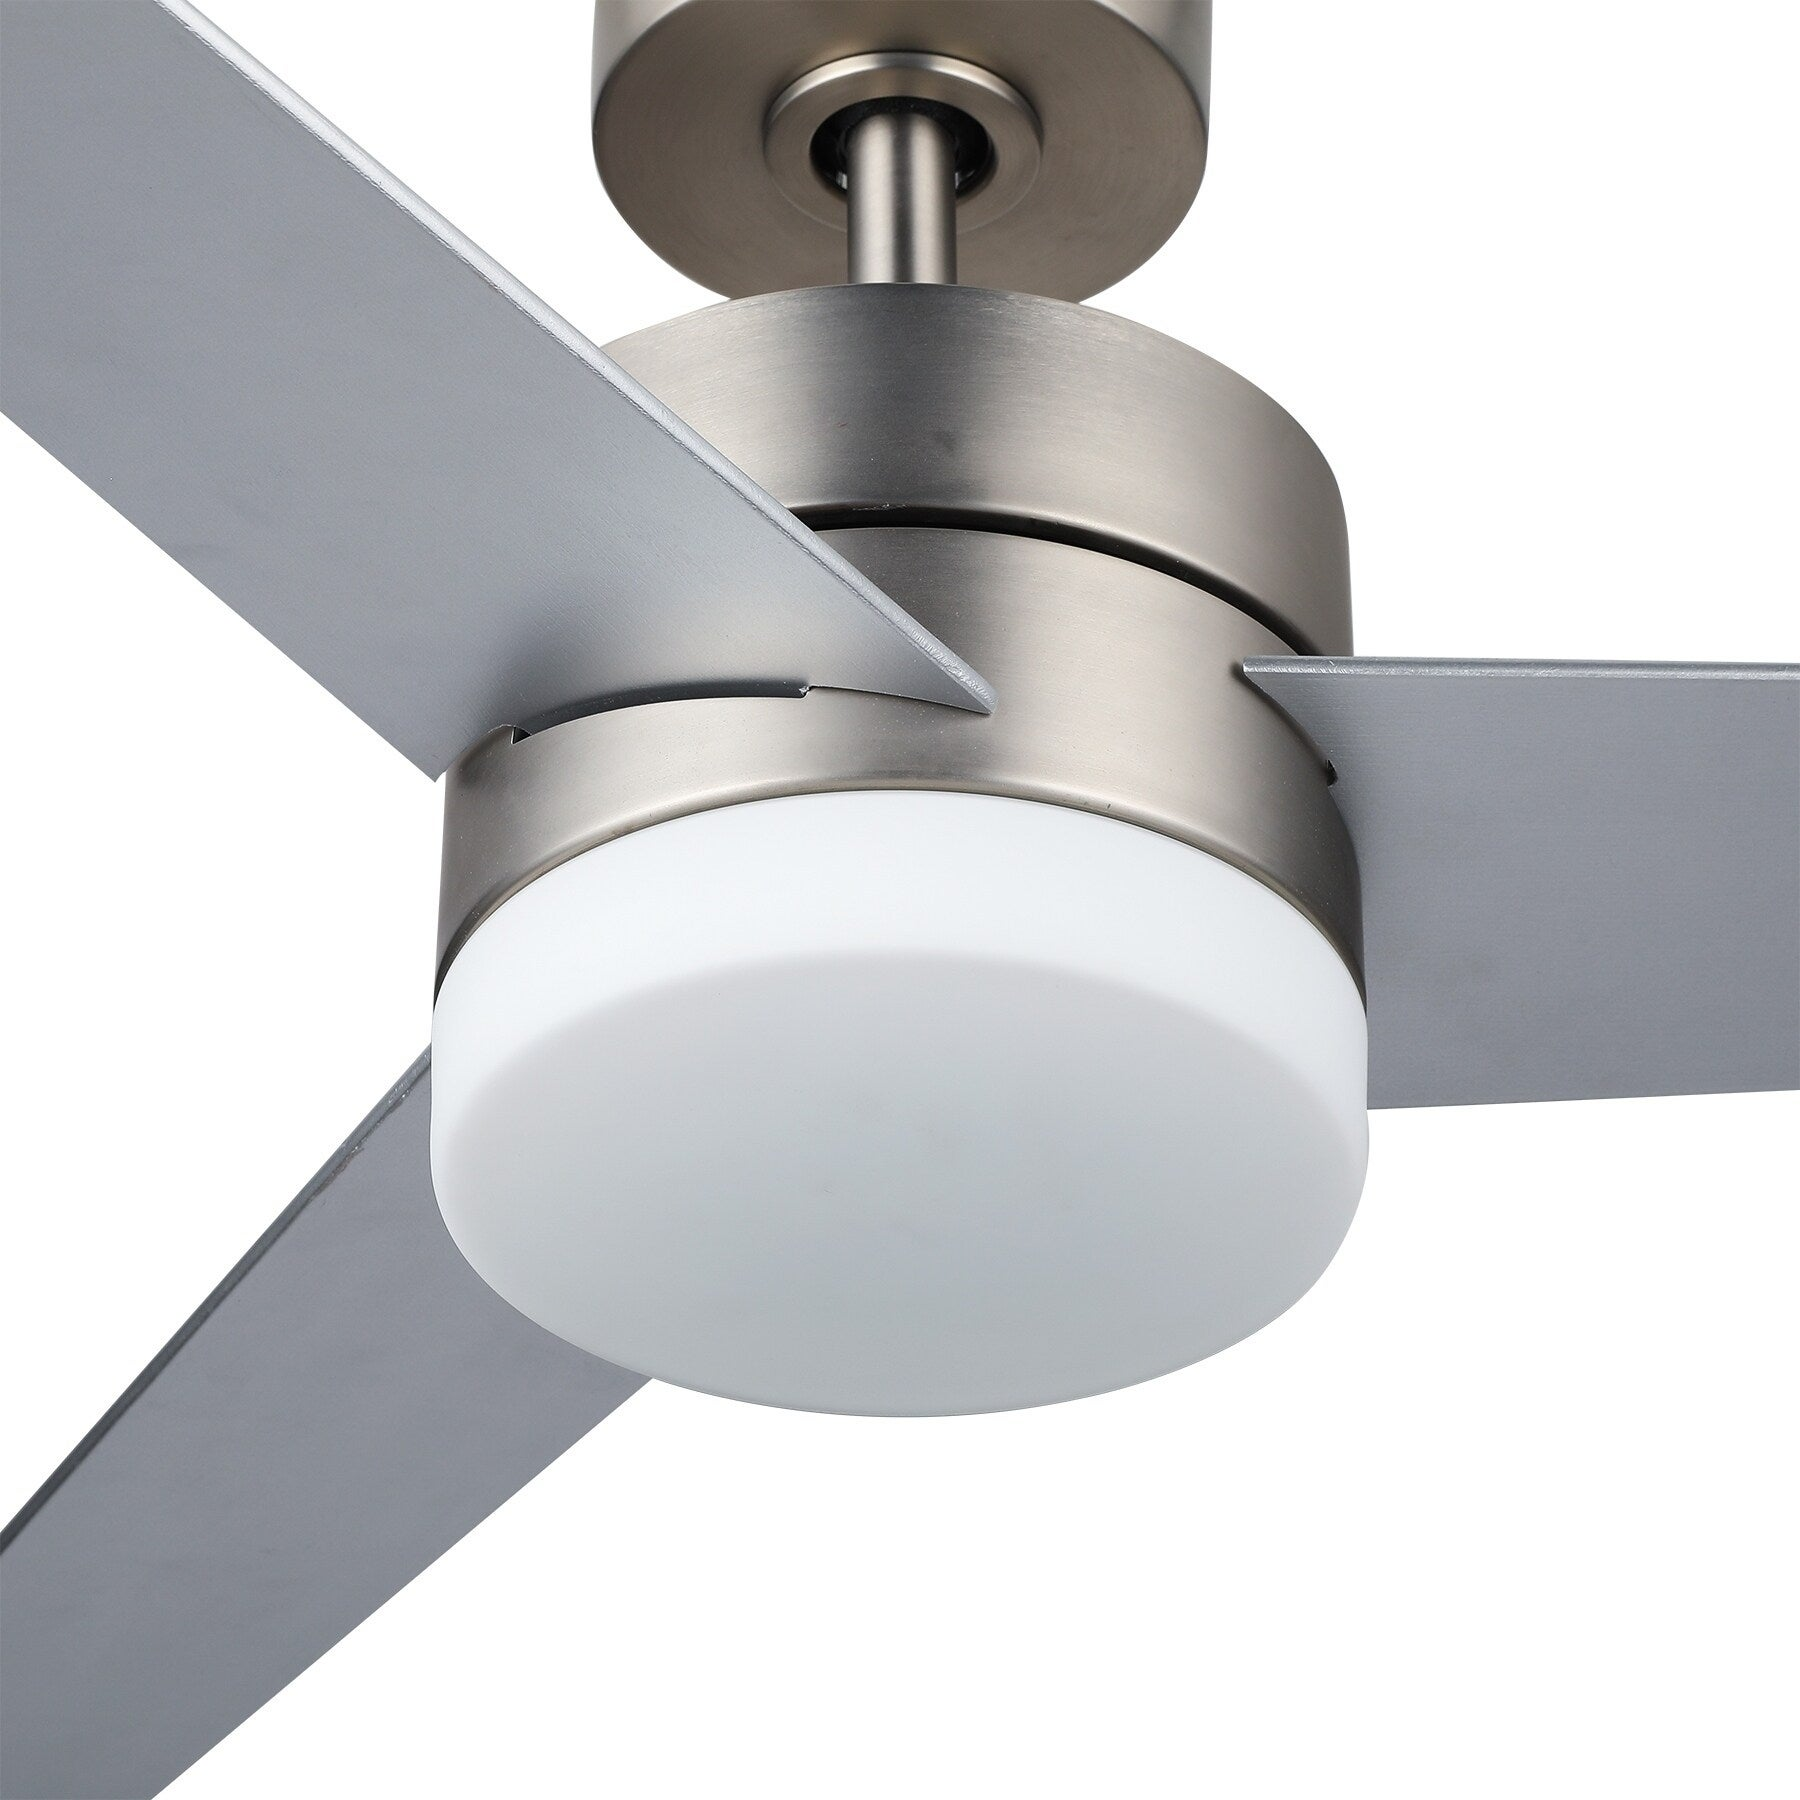 Co Z 52 3 Blade Modern Reversible Led Ceiling Fan With Light Kit And Remote Control Overstock 28358399